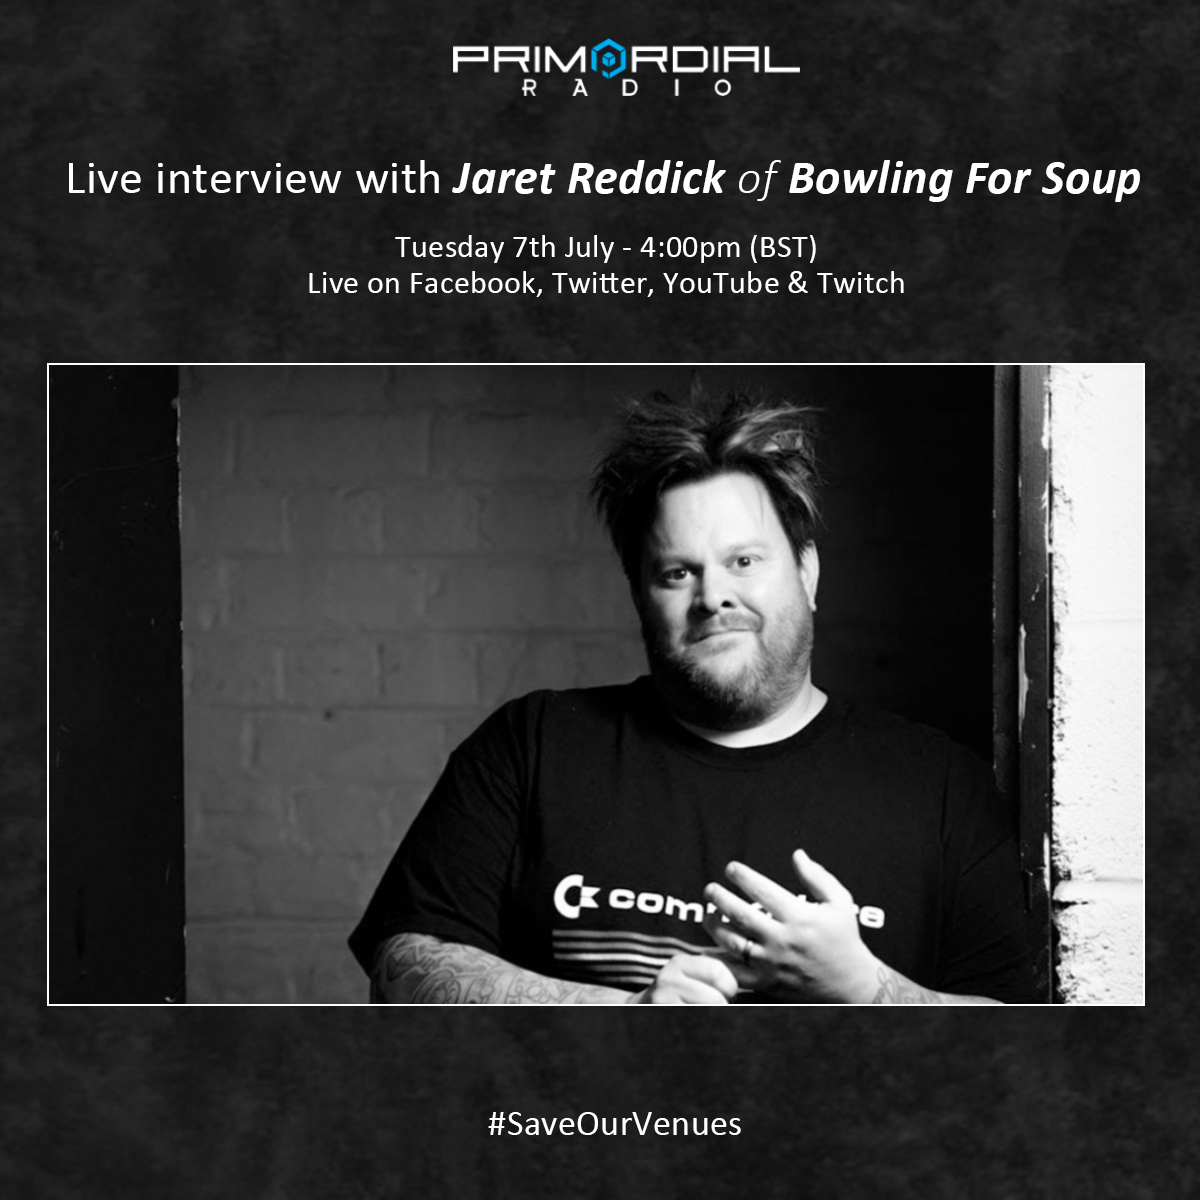 Video Interview with Jaret Reddick from Bowling for Soup on Primordial